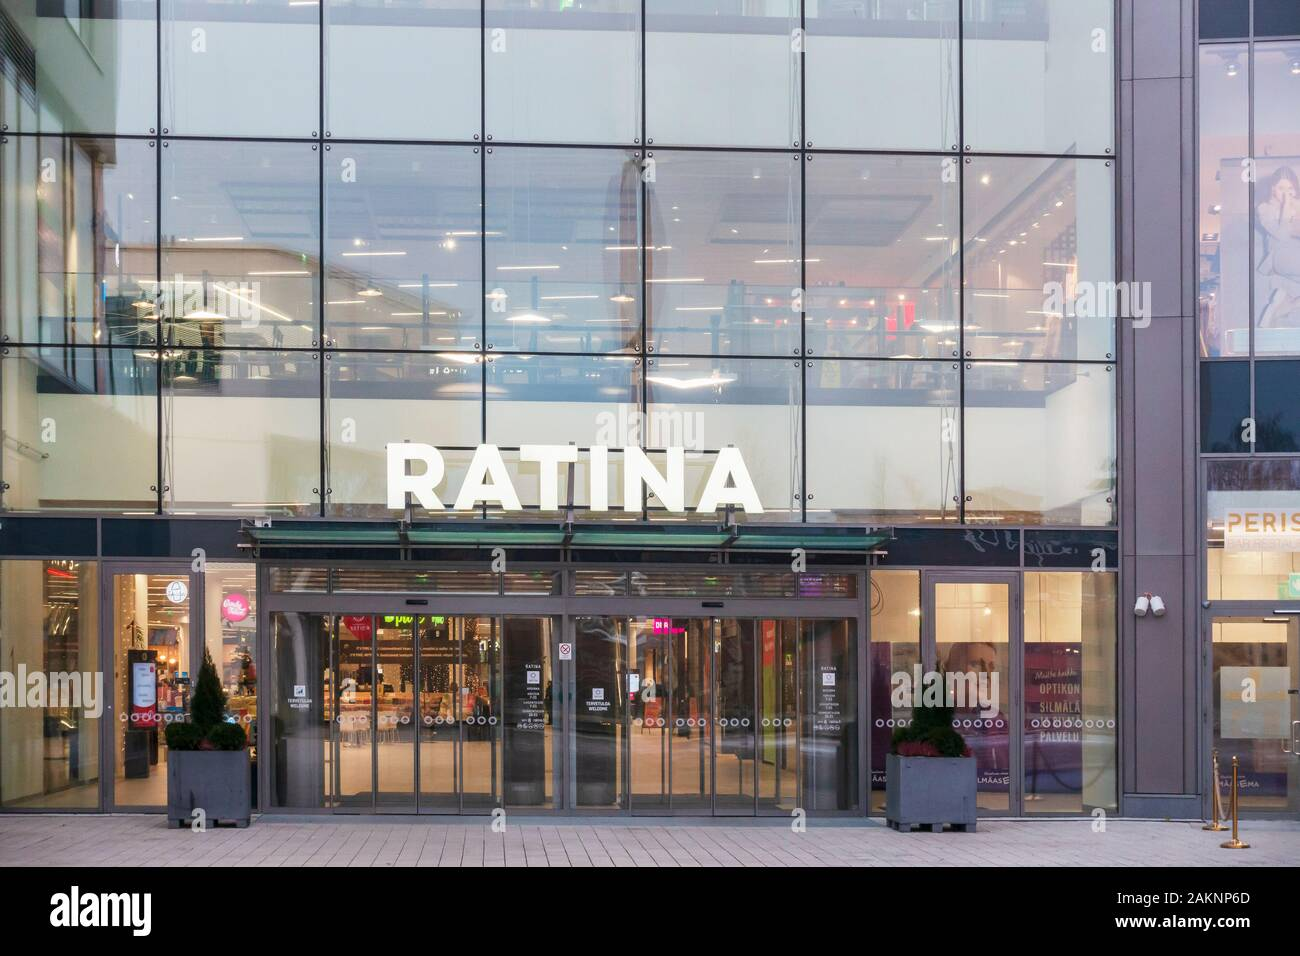 Ratina Shopping Mall in Tampere Finland Stock Photo